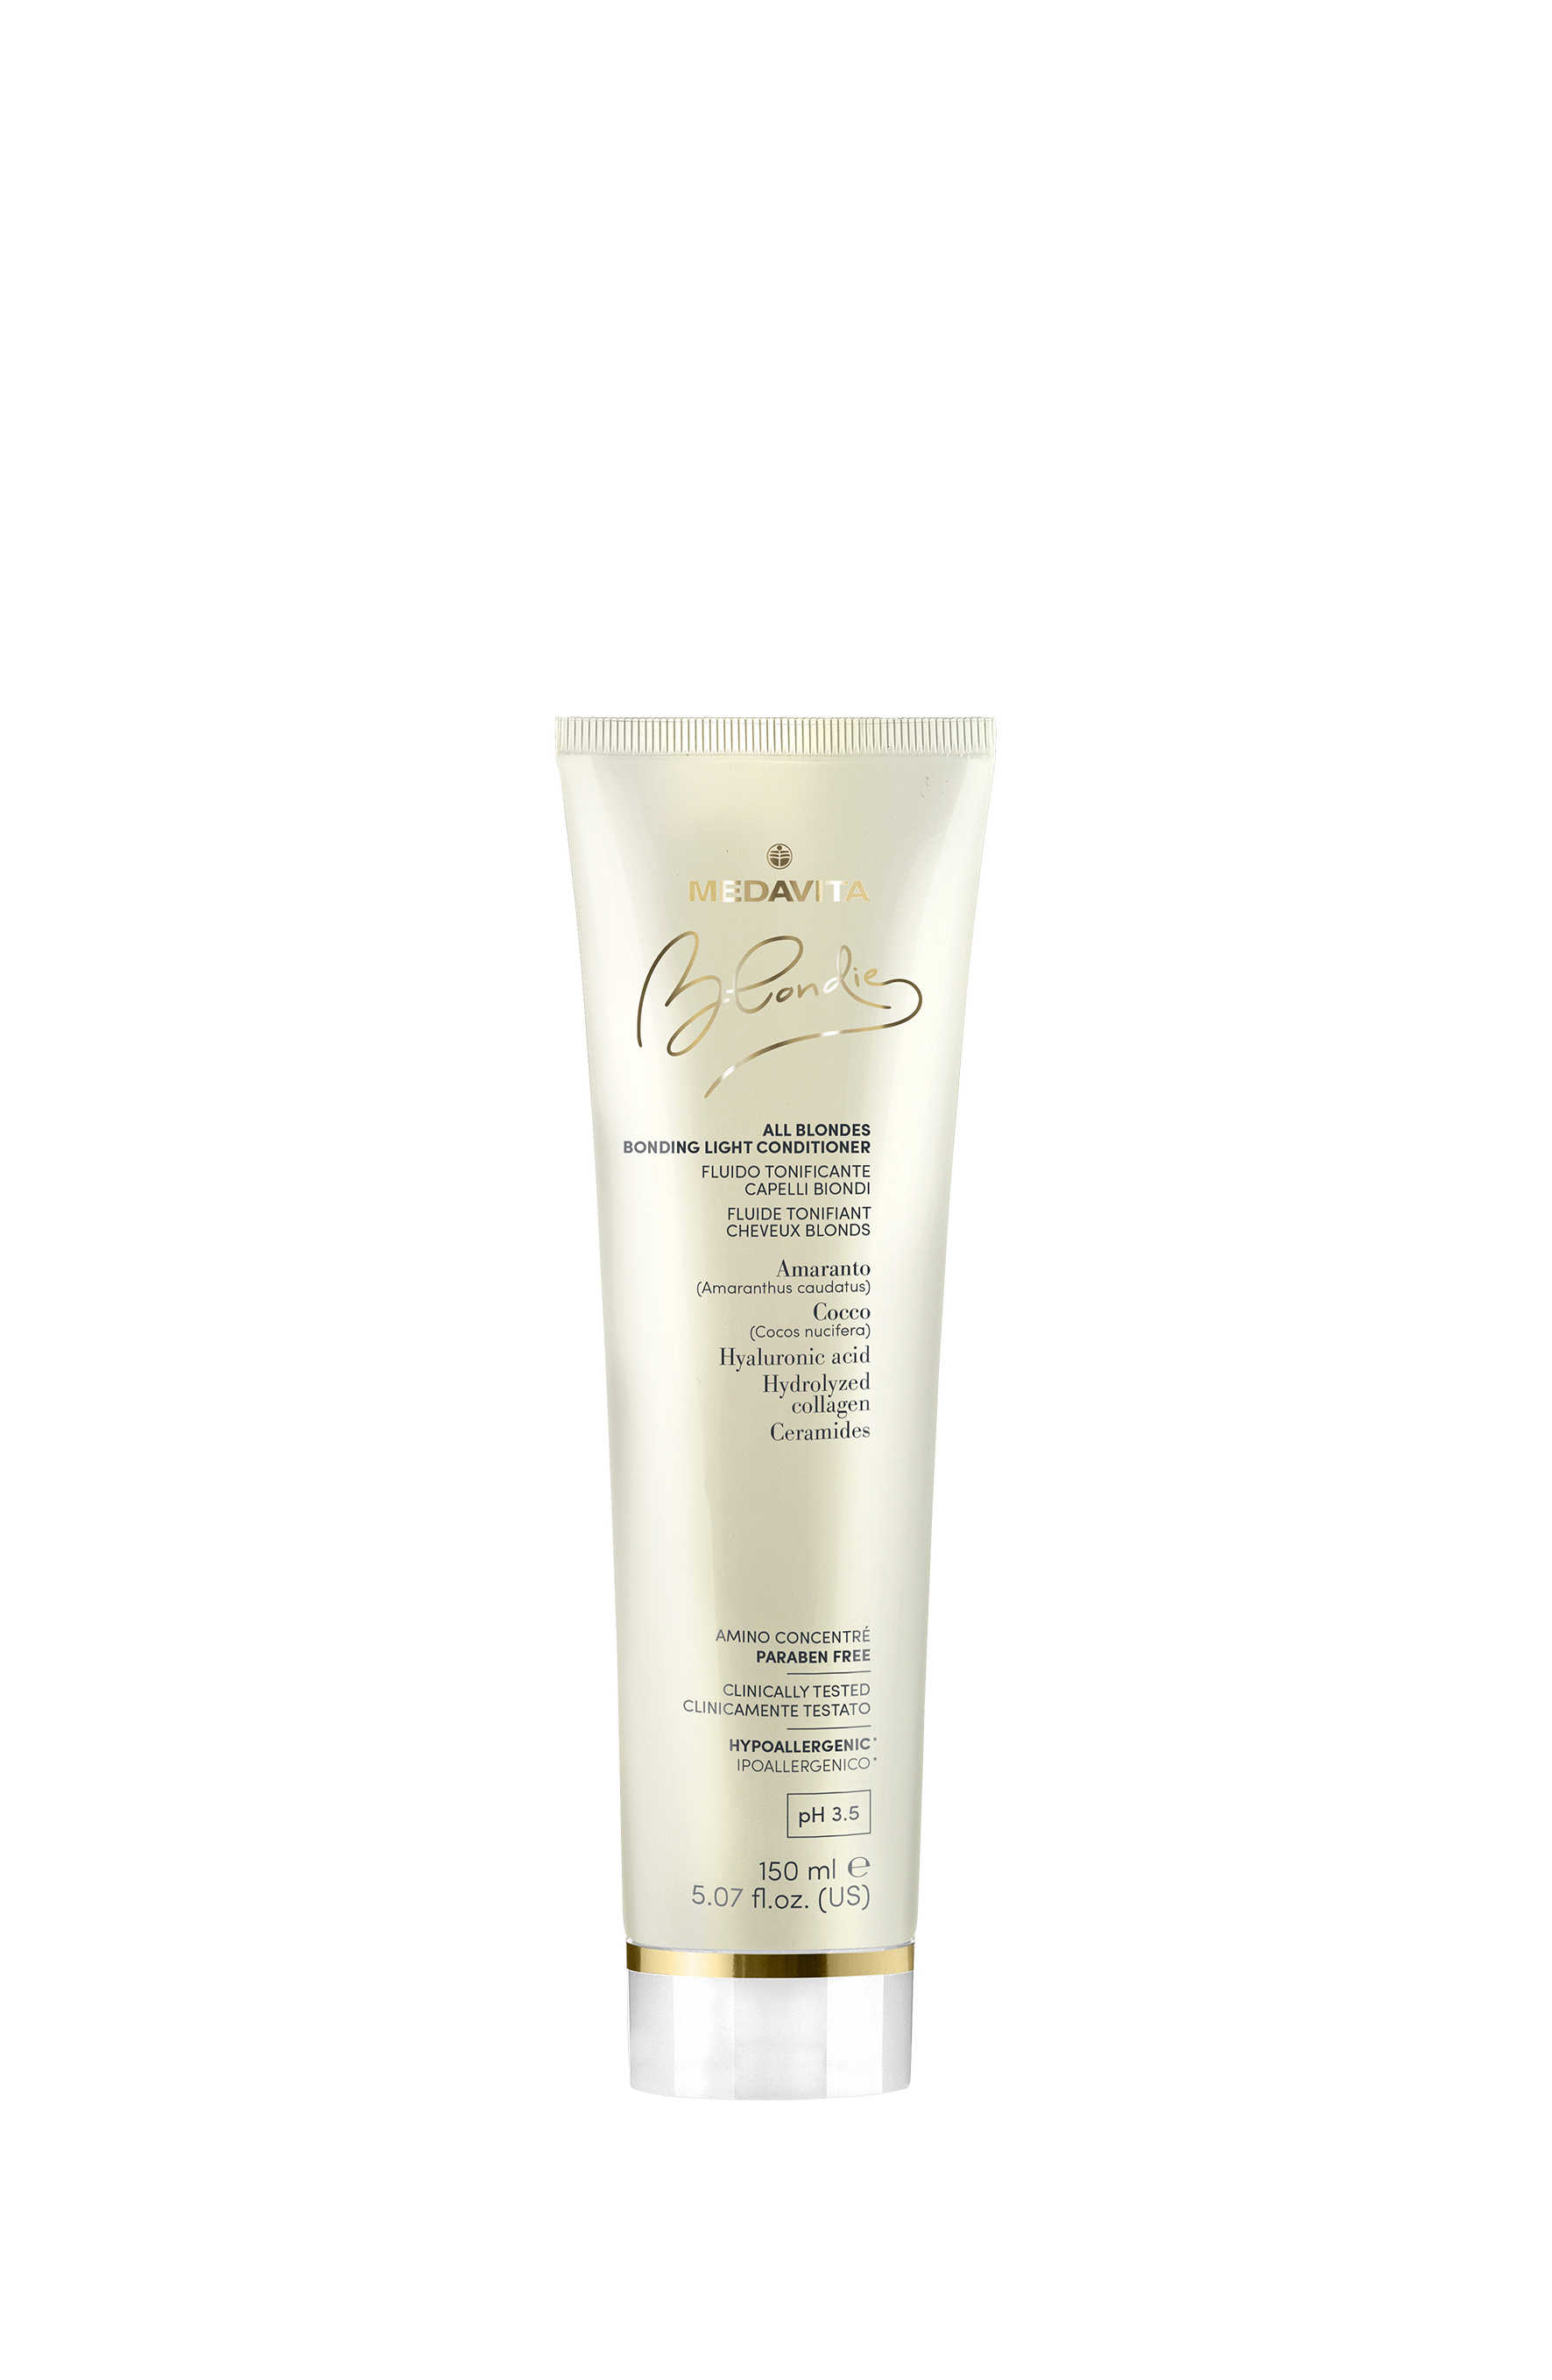 Blondie Tubo - All Blondes Bonding light cond mask 150ml